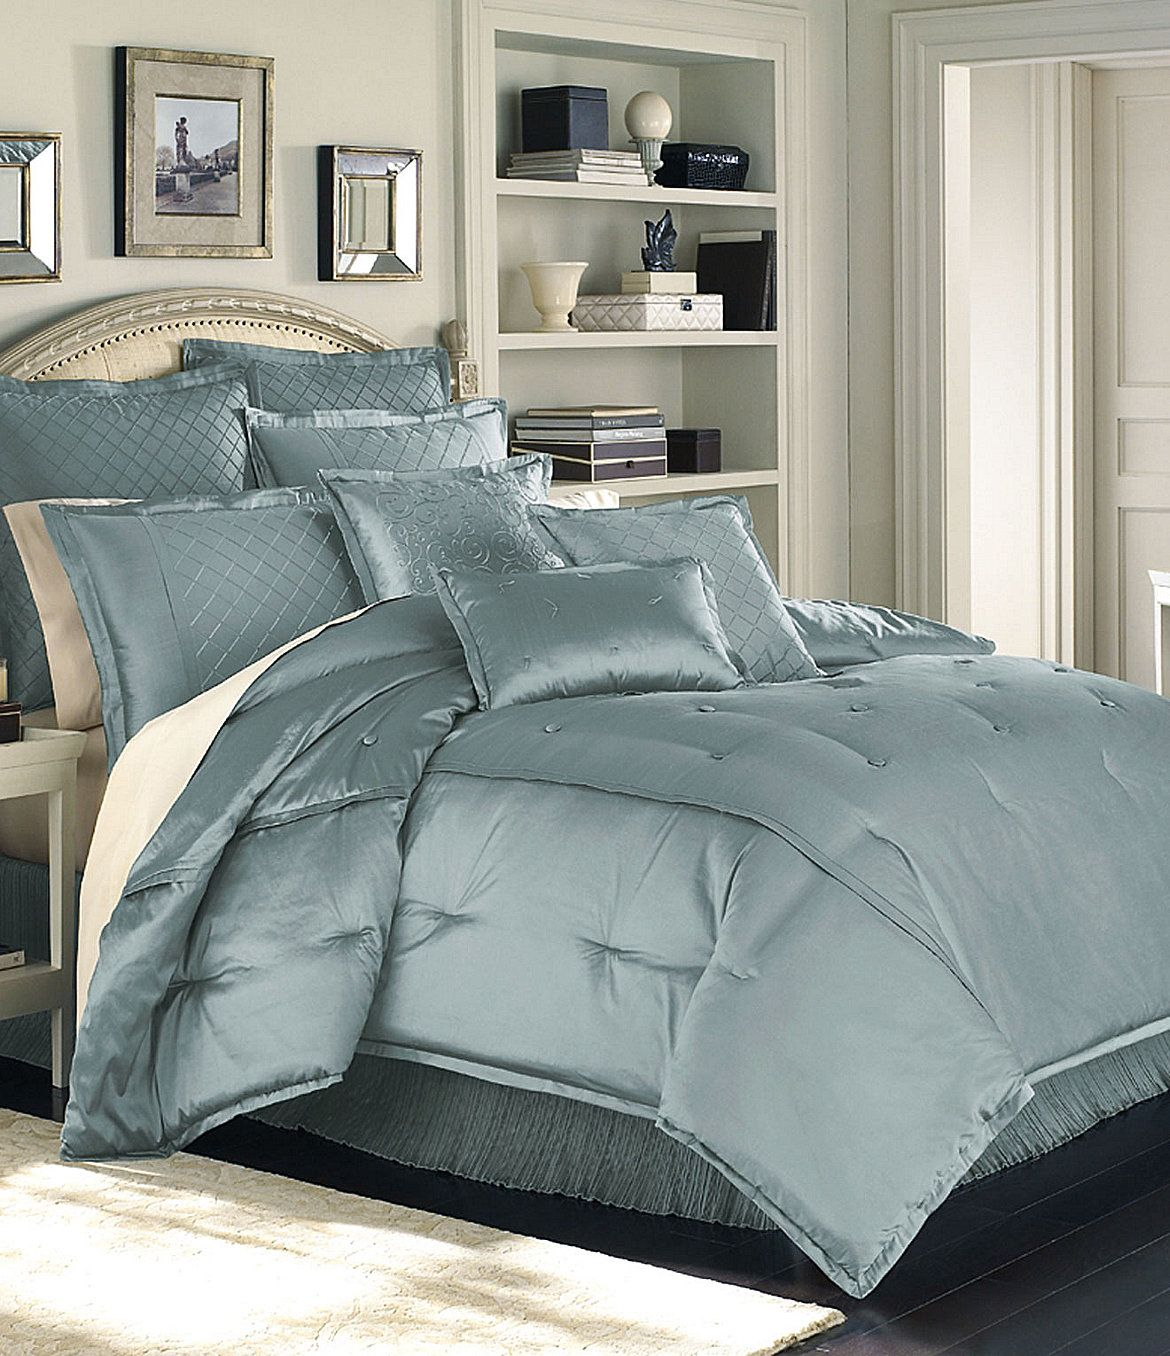 """Dillards Home Decor: Luxury Hotel """"Valmont"""" Blue Bedding Collection"""